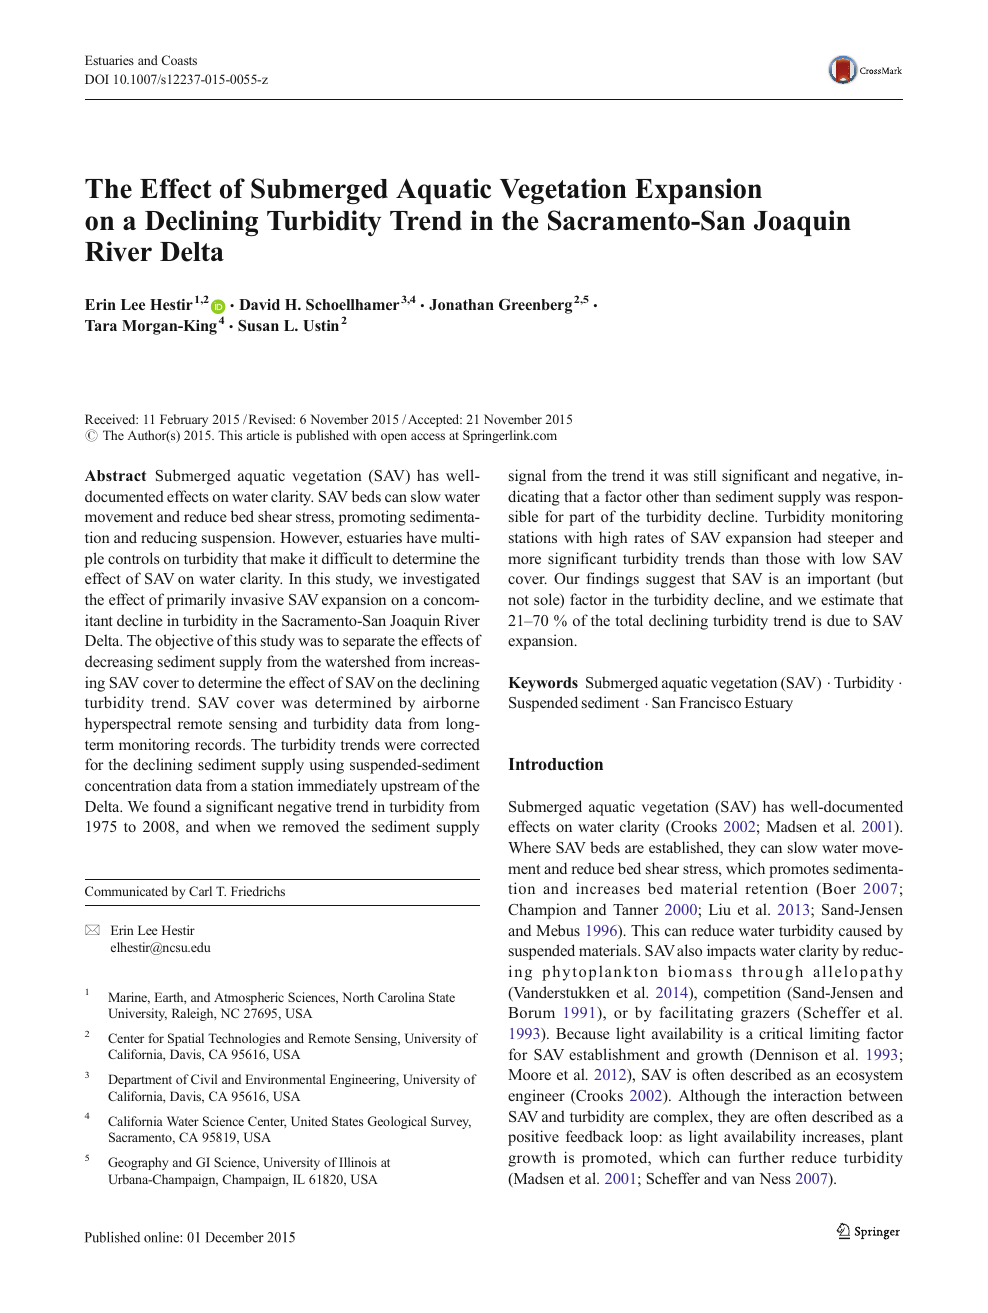 The Effect of Submerged Aquatic Vegetation Expansion on a